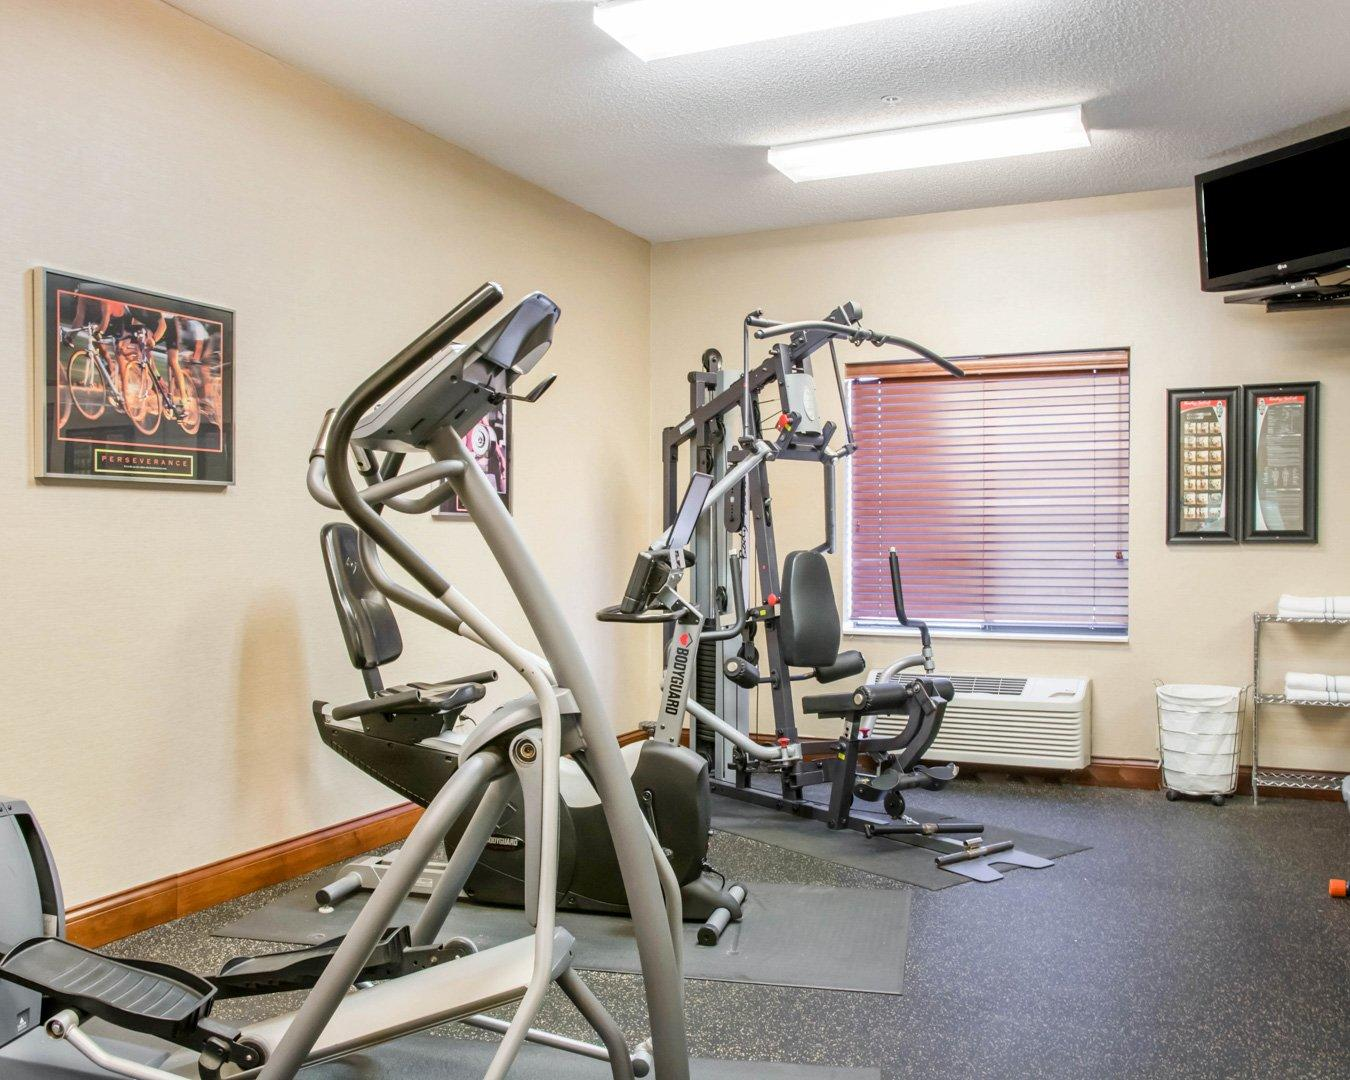 Comfort Inn Amp Suites In West Chester Oh Whitepages